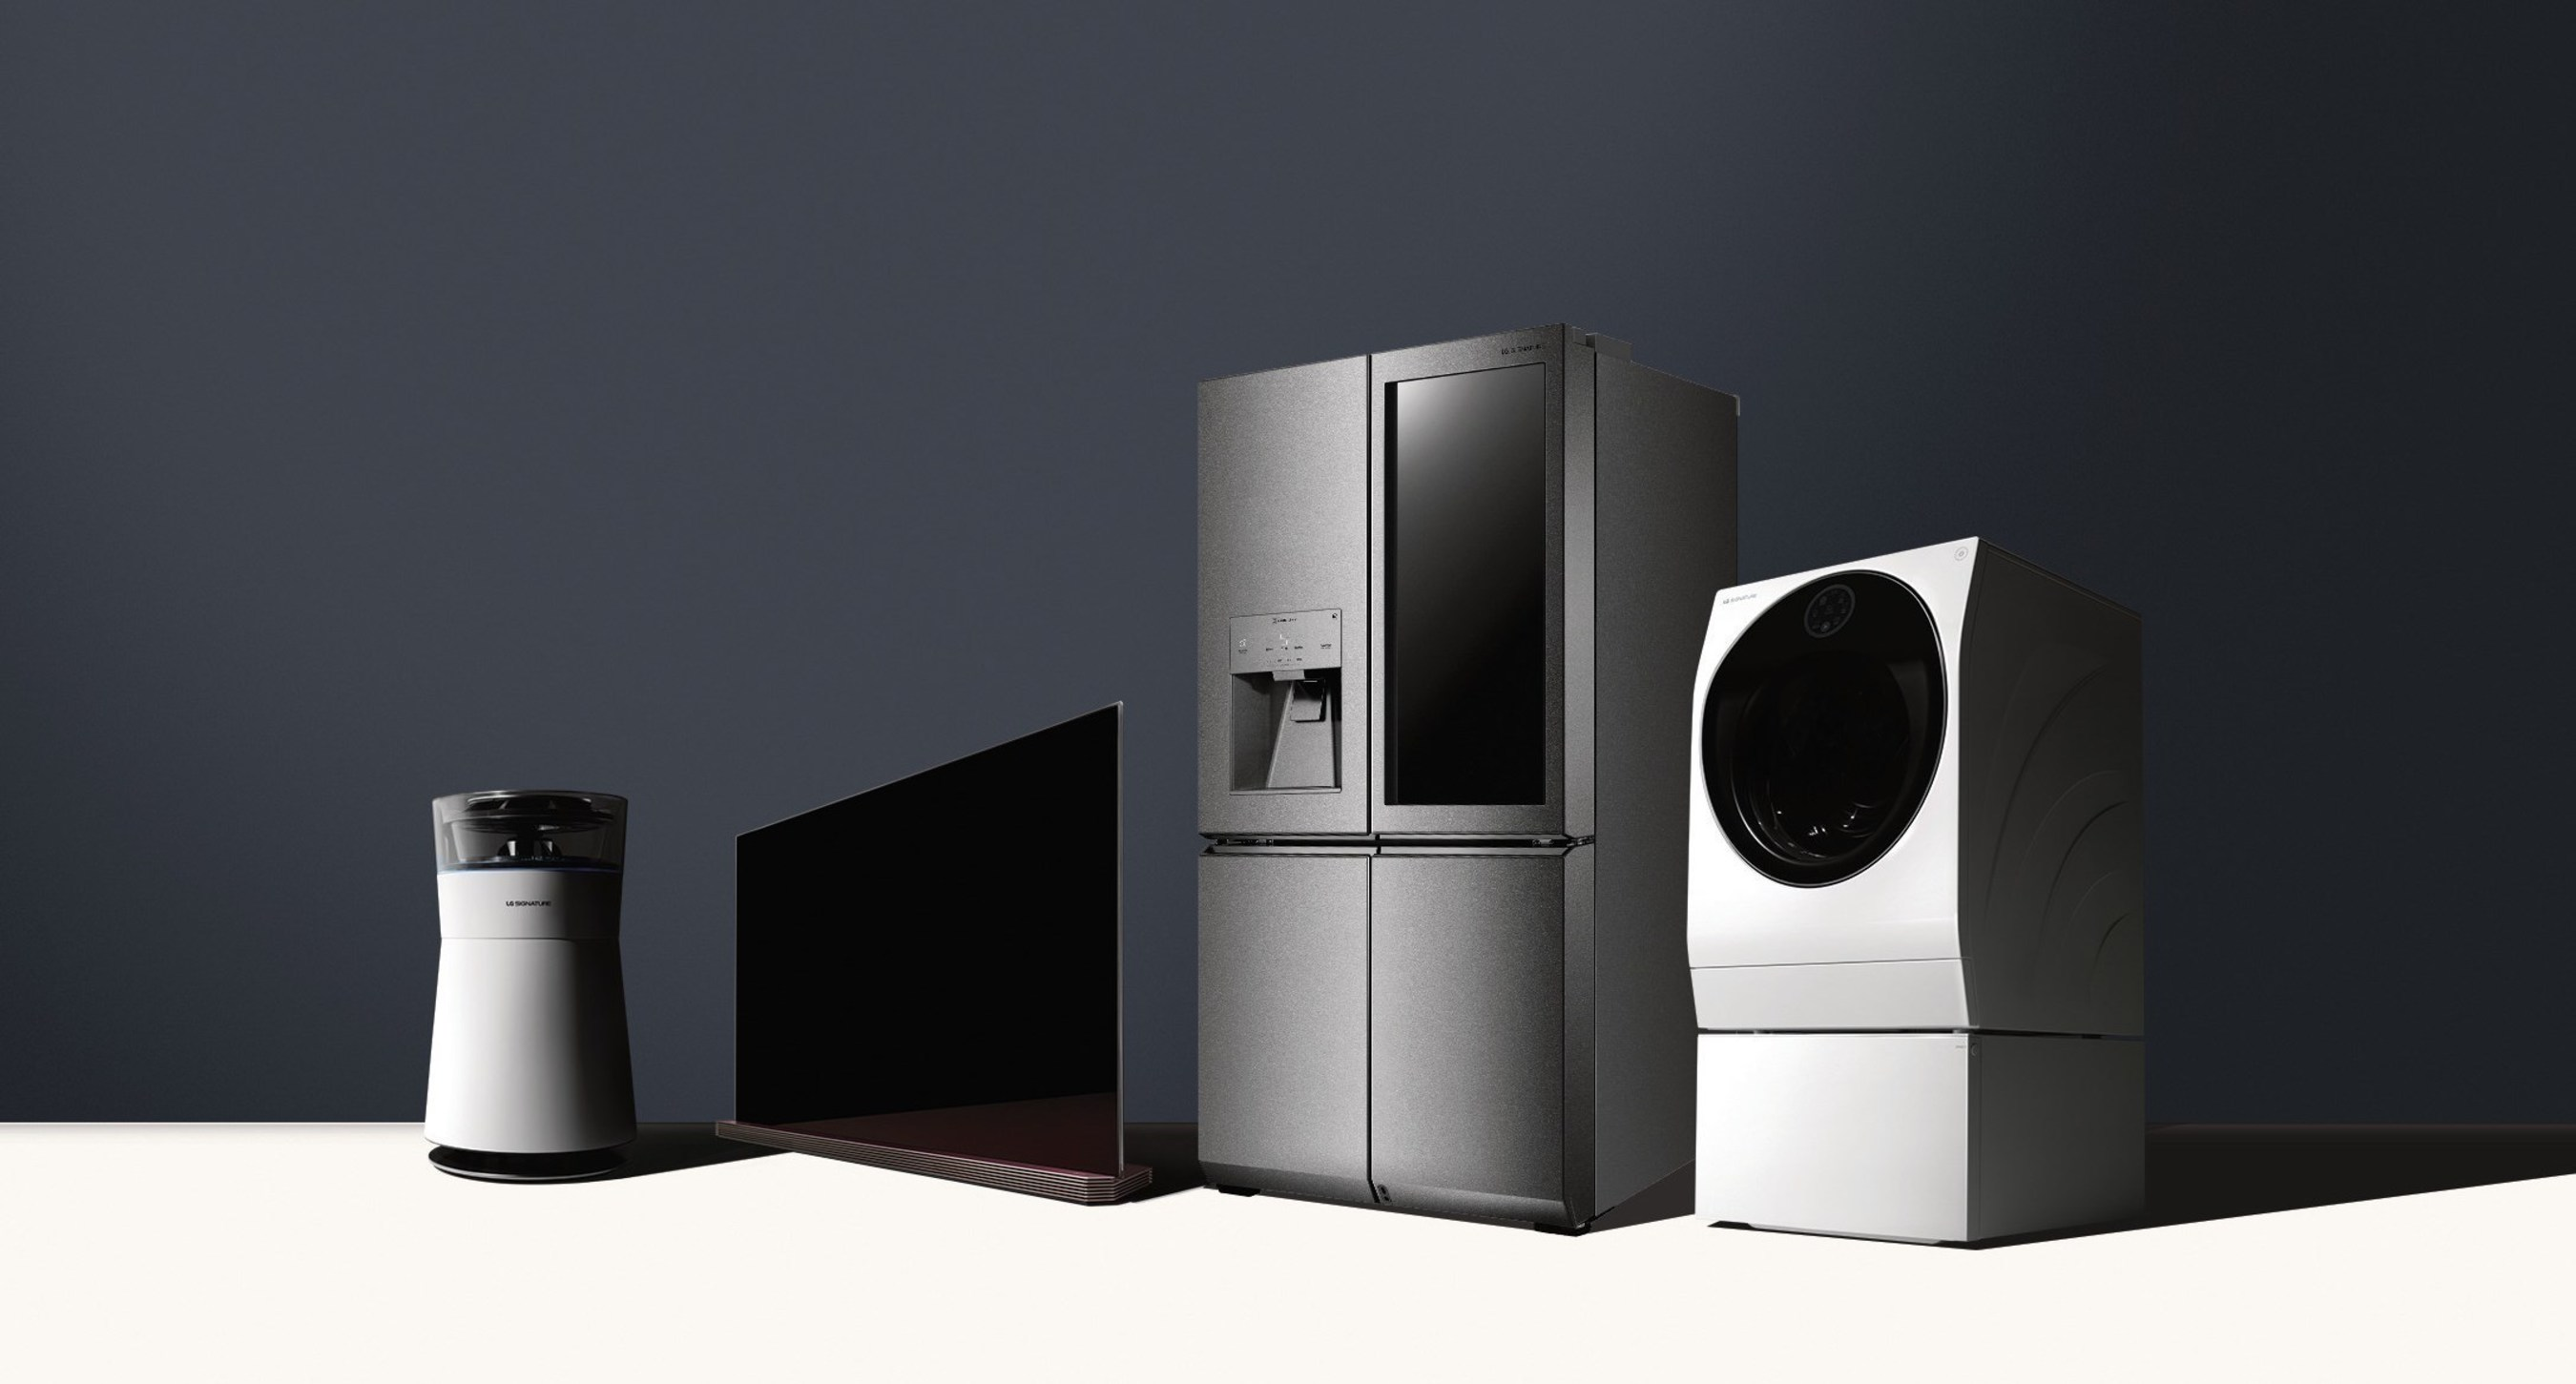 LG SIGNATURE line of products